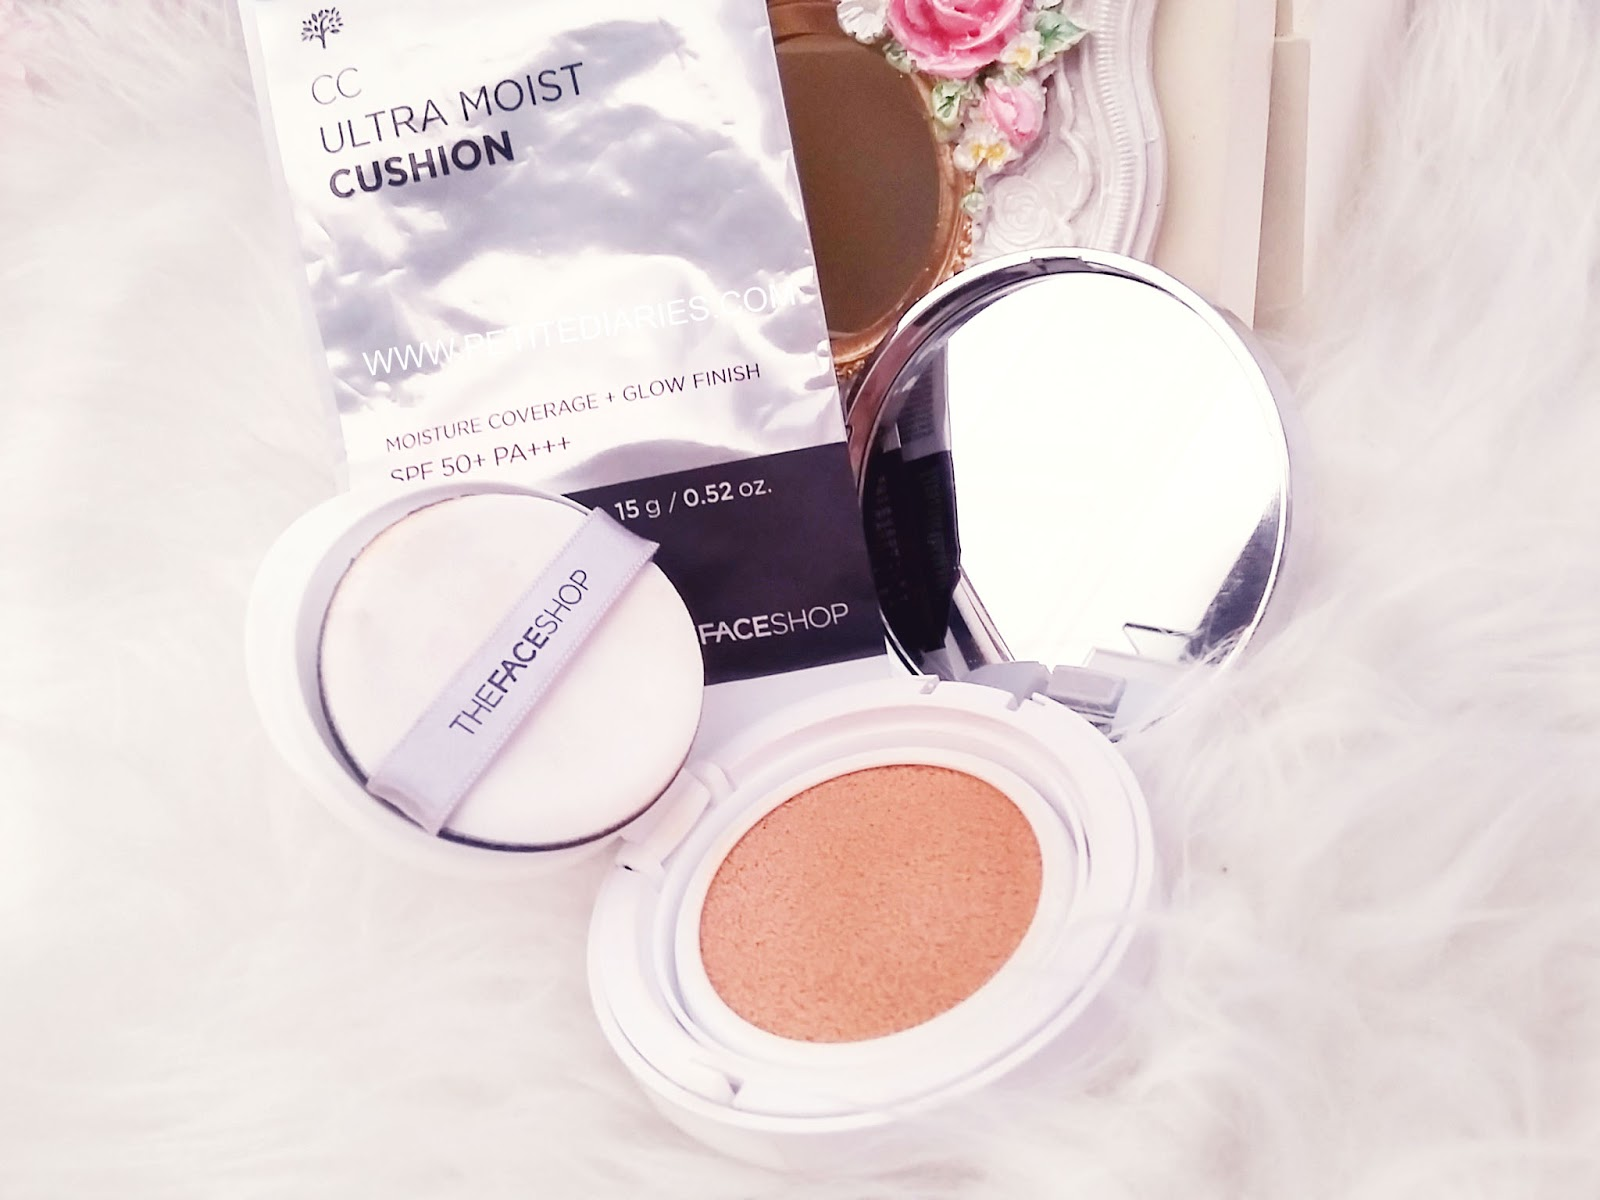 teh faceshop haul cc cushion ultra moist review